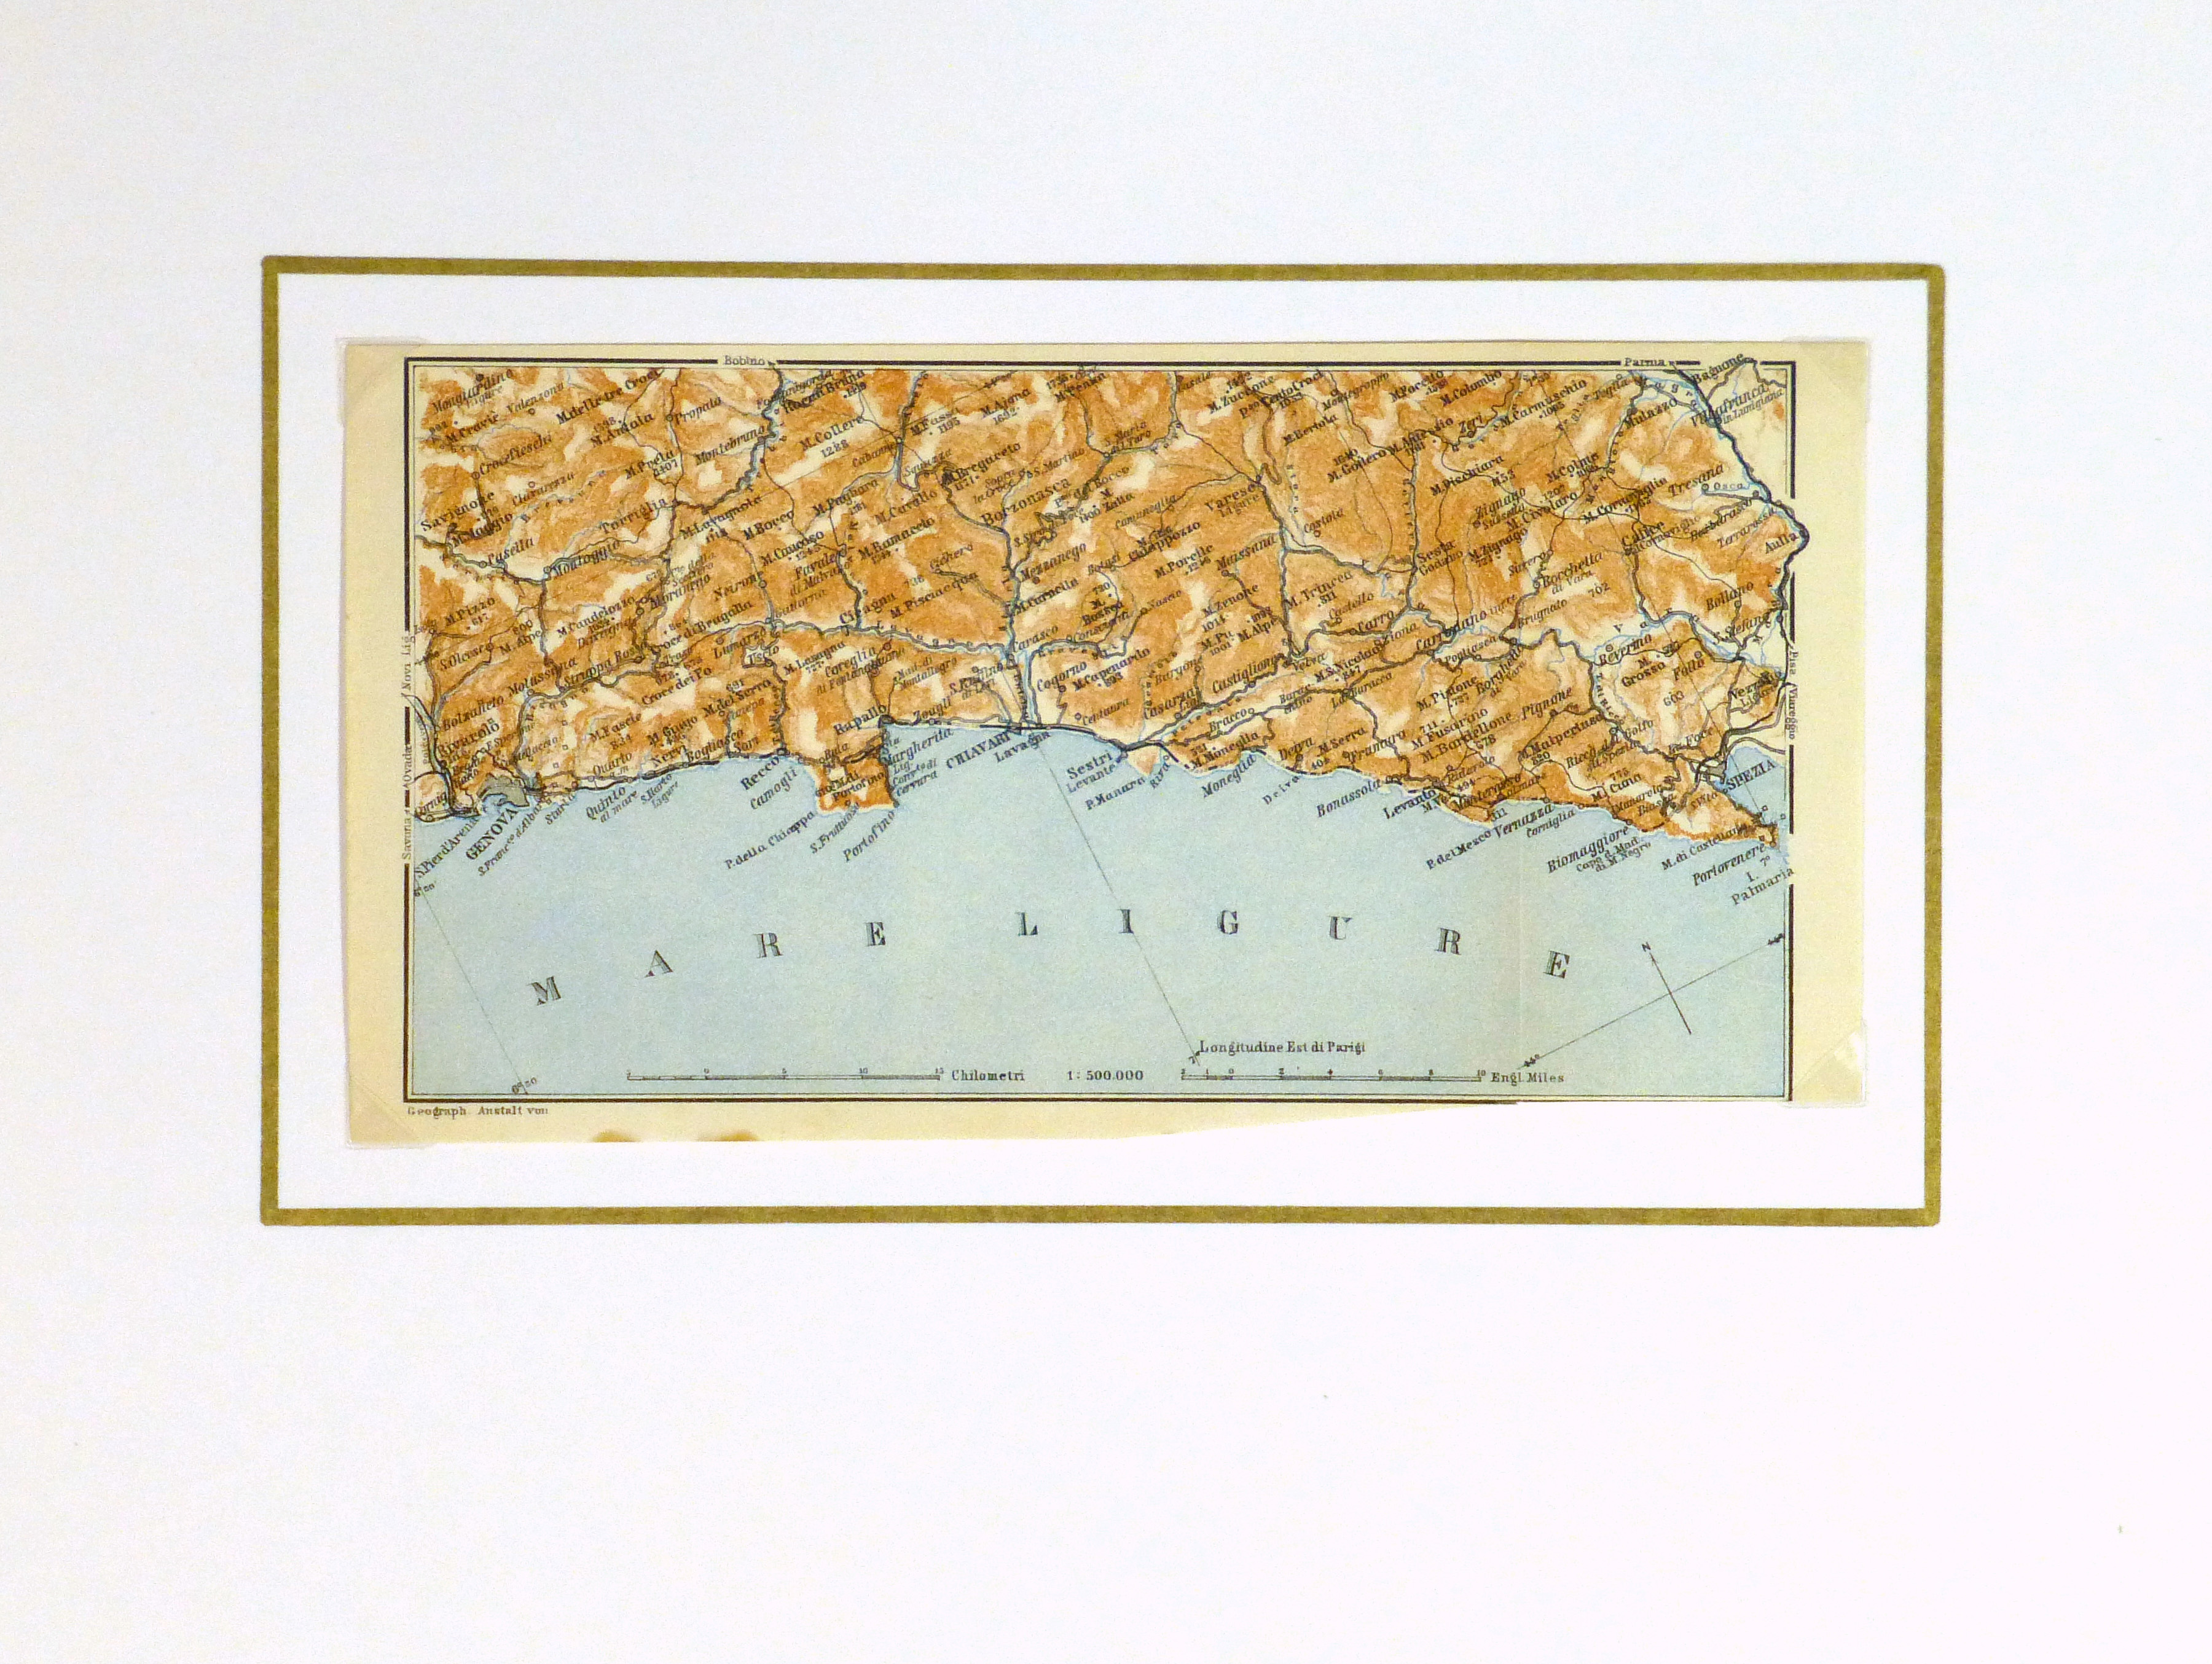 Genova & Spezia Map, 1928-matted-9343K